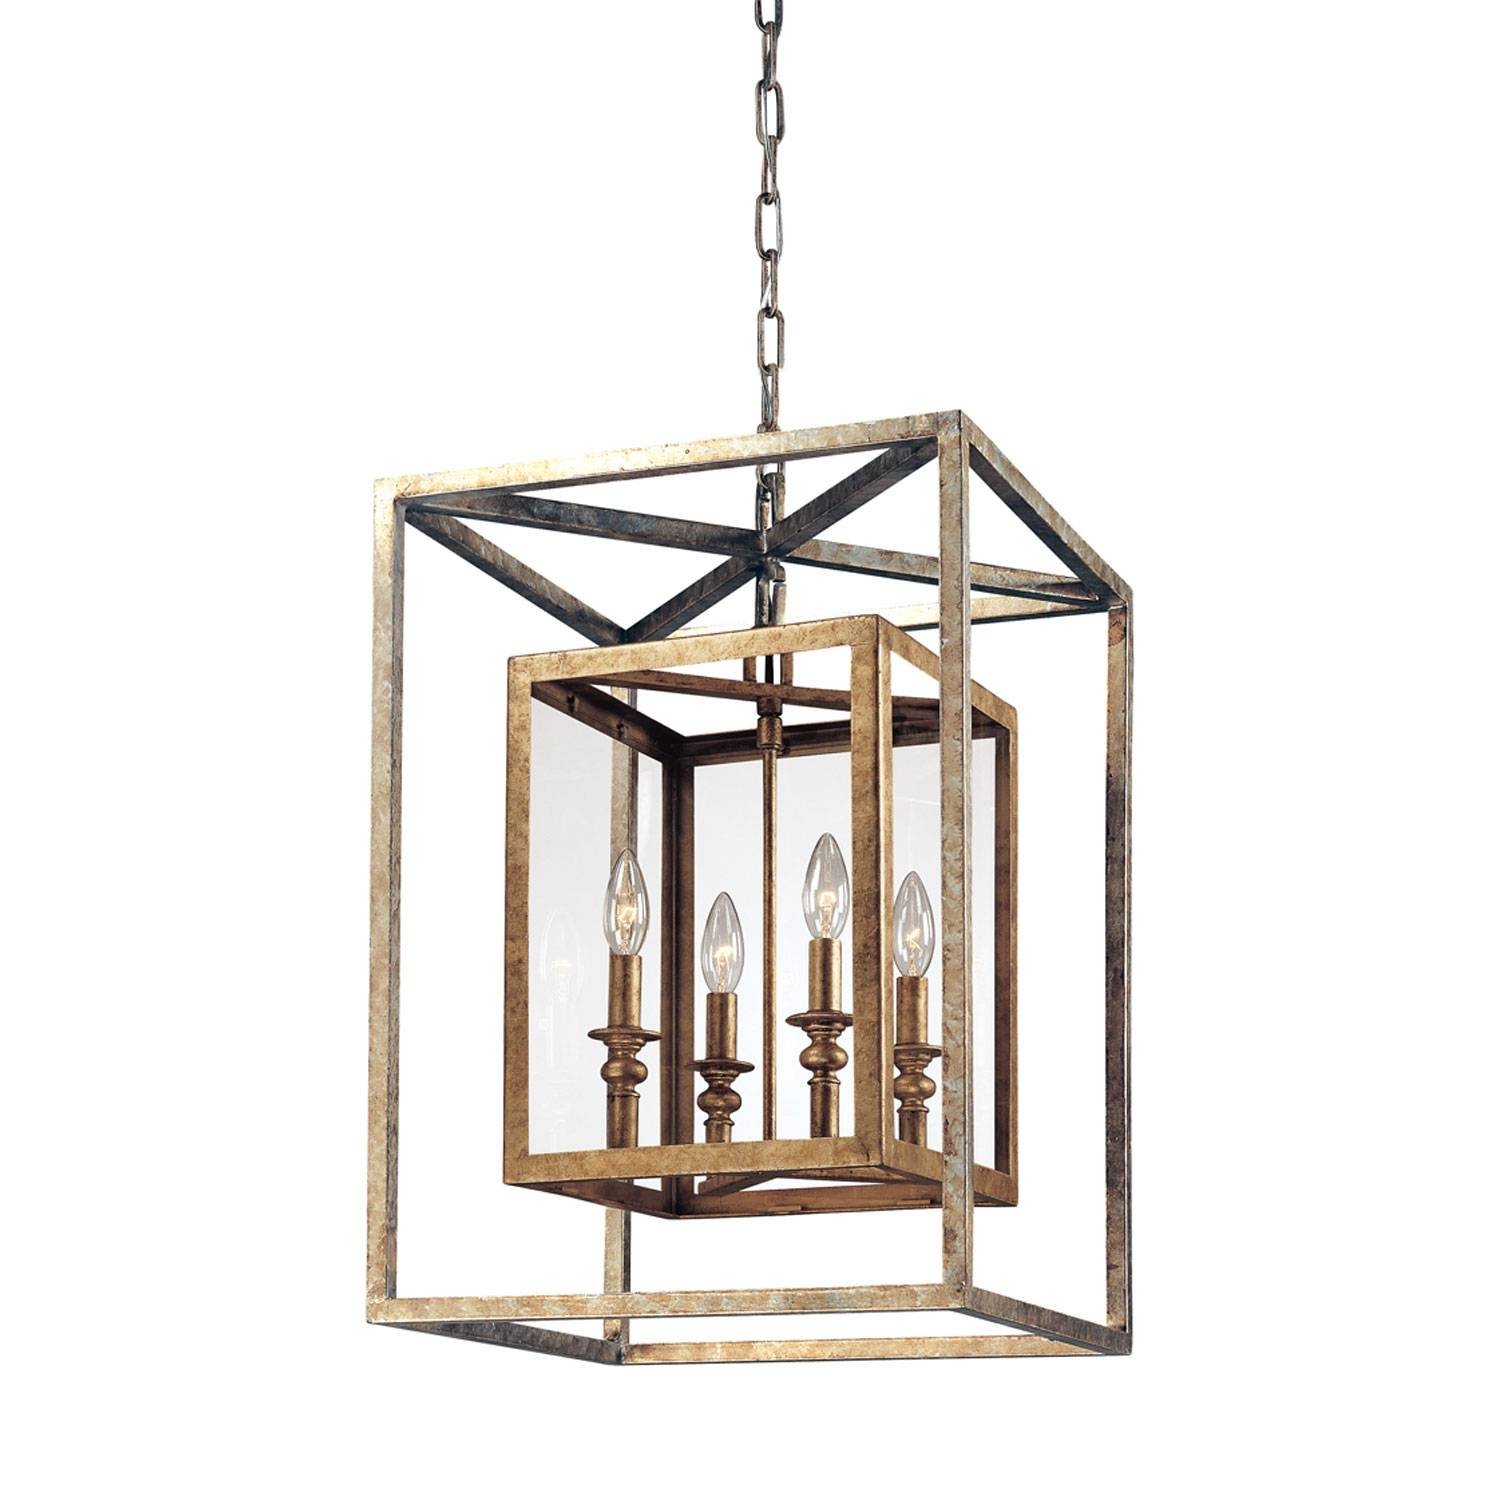 Mini Lantern Pendant Light Ideas Including For Kitchen Images Within Mini Lantern Pendant Lights (View 5 of 15)